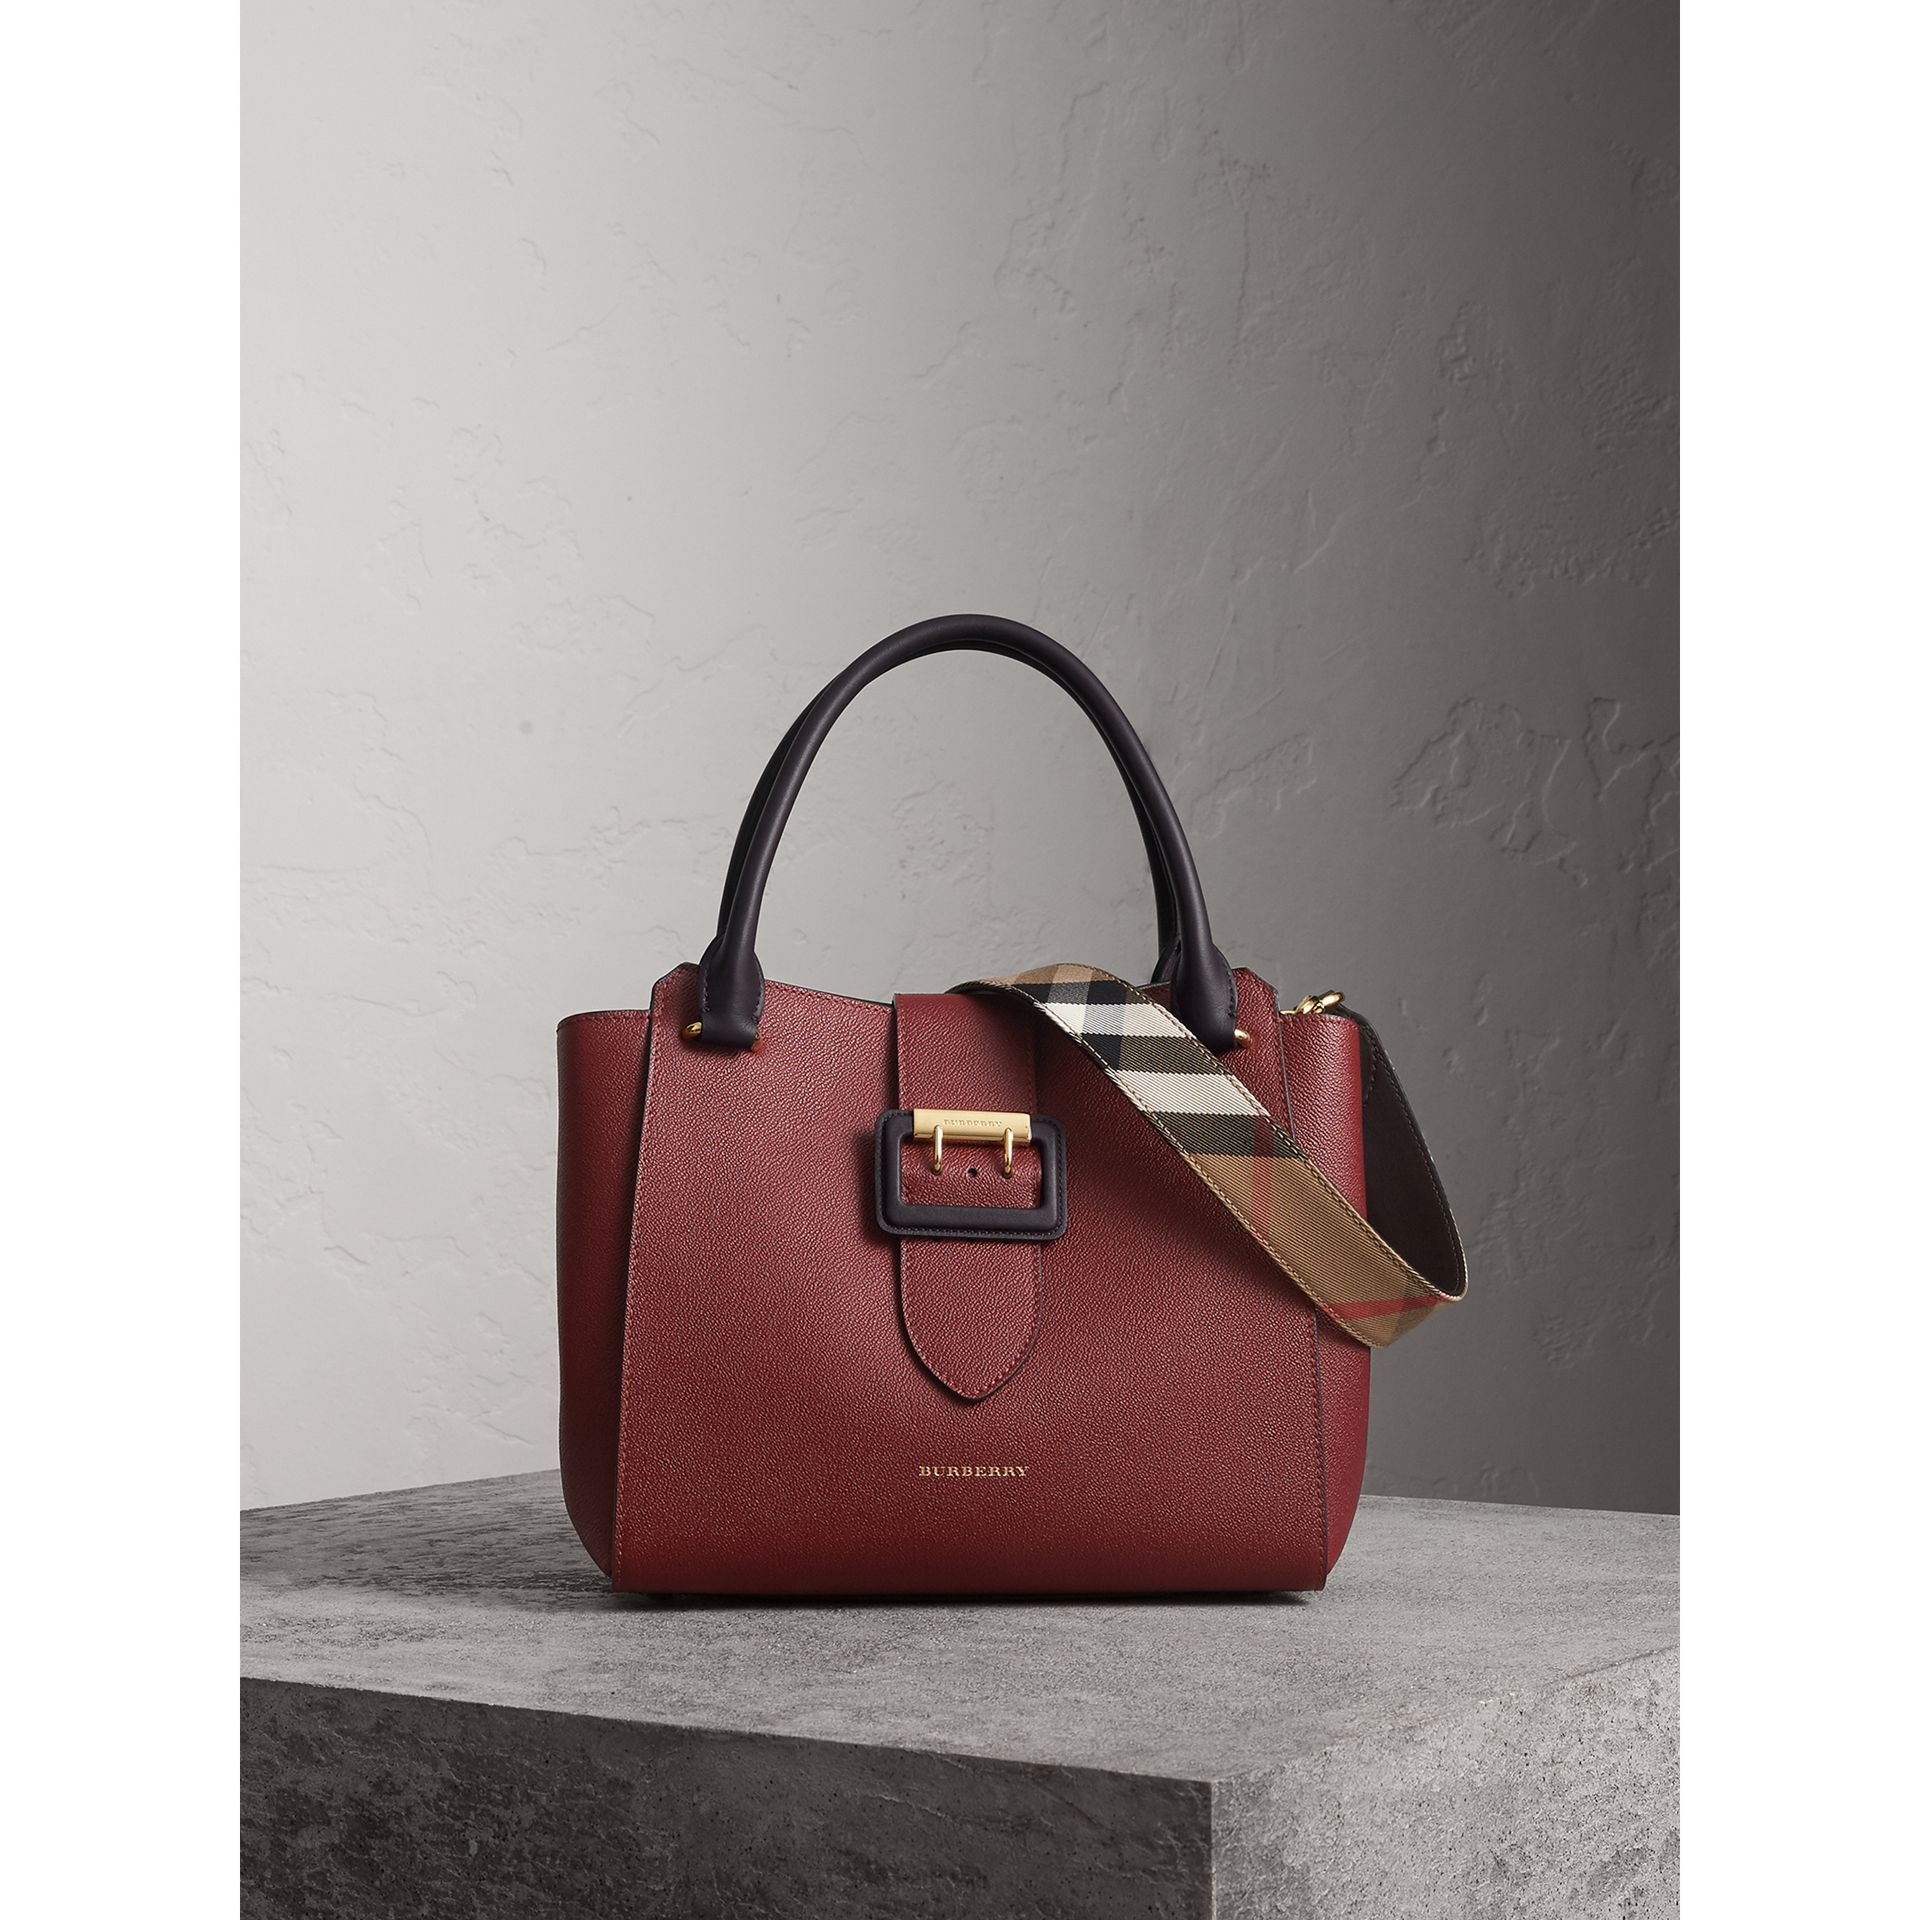 Sac tote The Buckle moyen en cuir grainé (Bourgogne) - Femme | Burberry - photo de la galerie 1